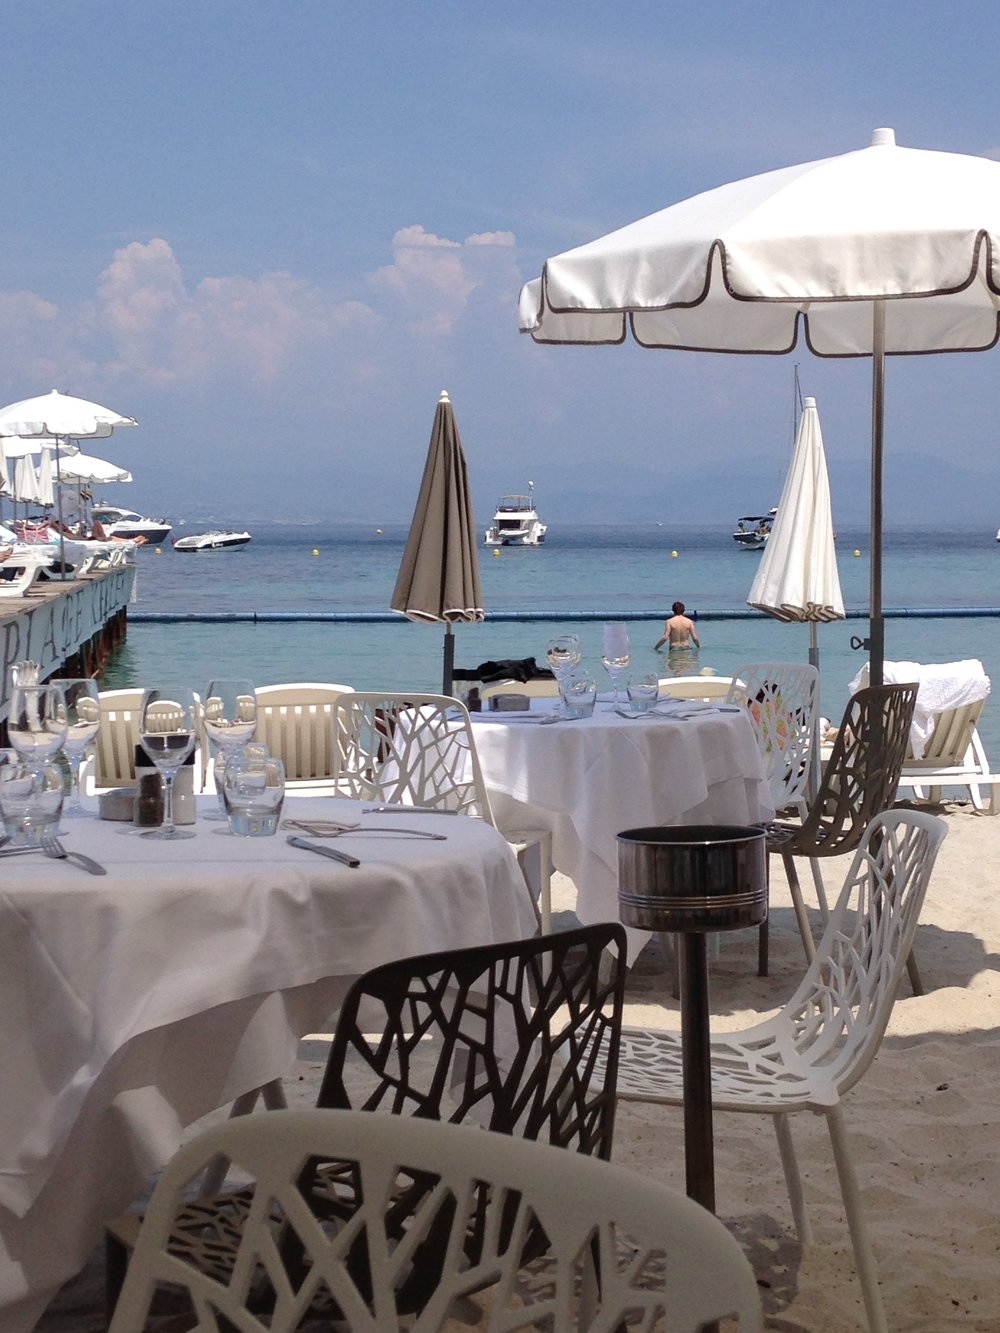 Lunch on Keller Plage, Juan les Pins